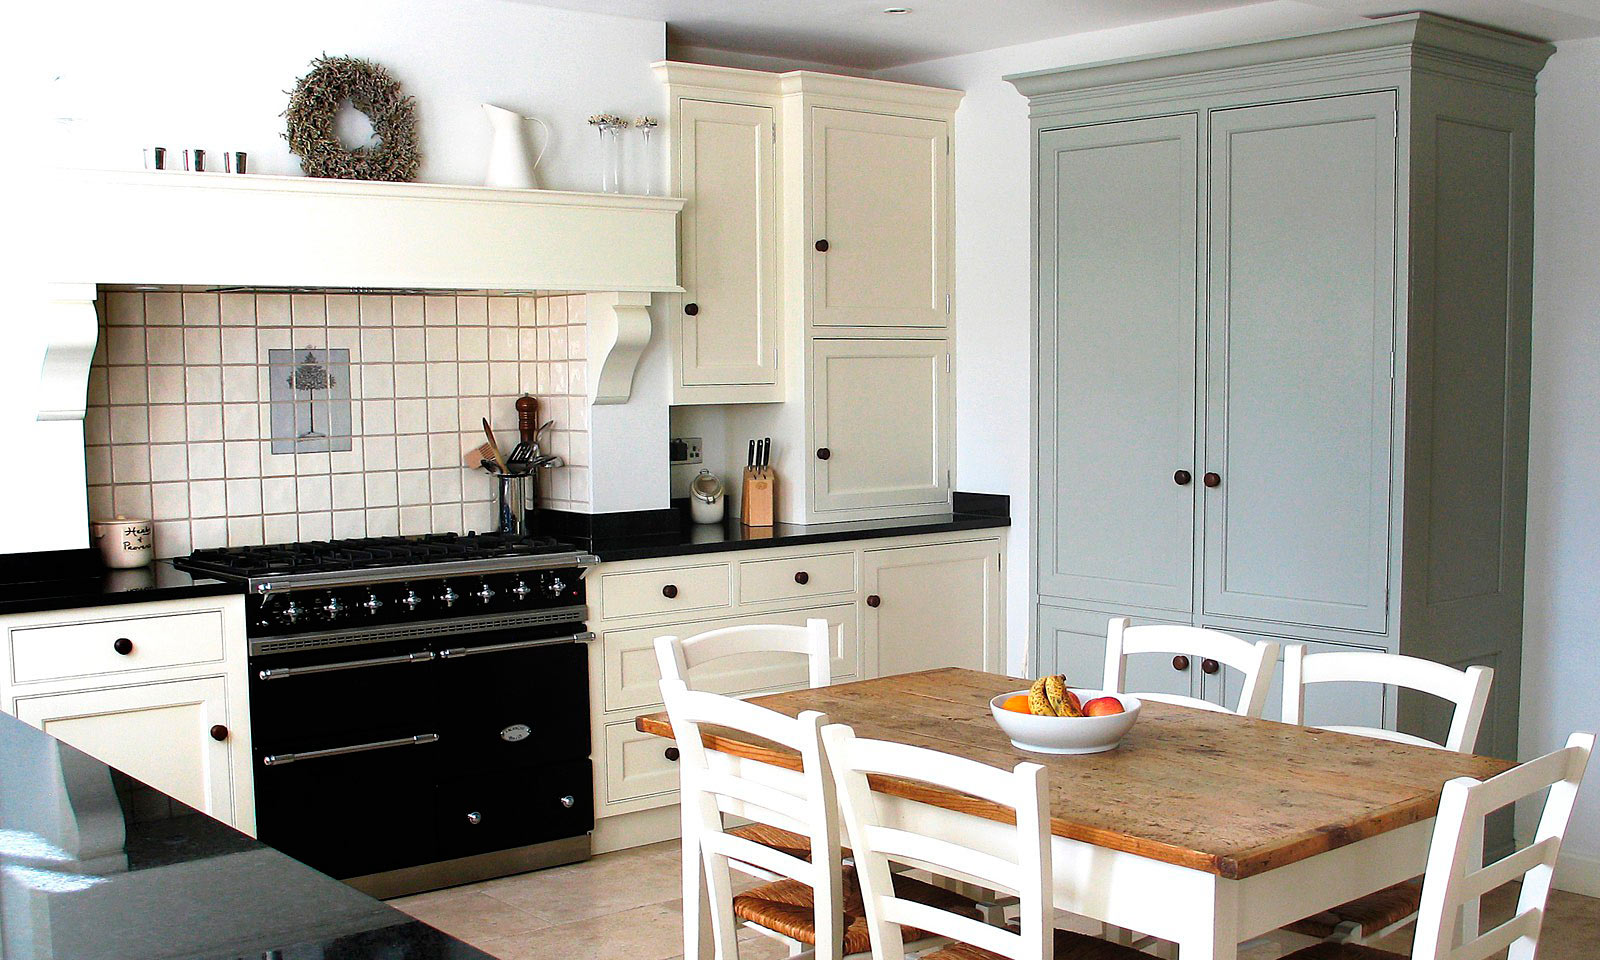 Otford. A classic handmade, hand-painted, Shaker style kitchen, installed in a traditional farmhouse and featuring a built in Bang & Olufsen music system. A bespoke hand-crafted kitchen manufactured by the skilled cabinet makers at Mounts Hill Woodcraft.